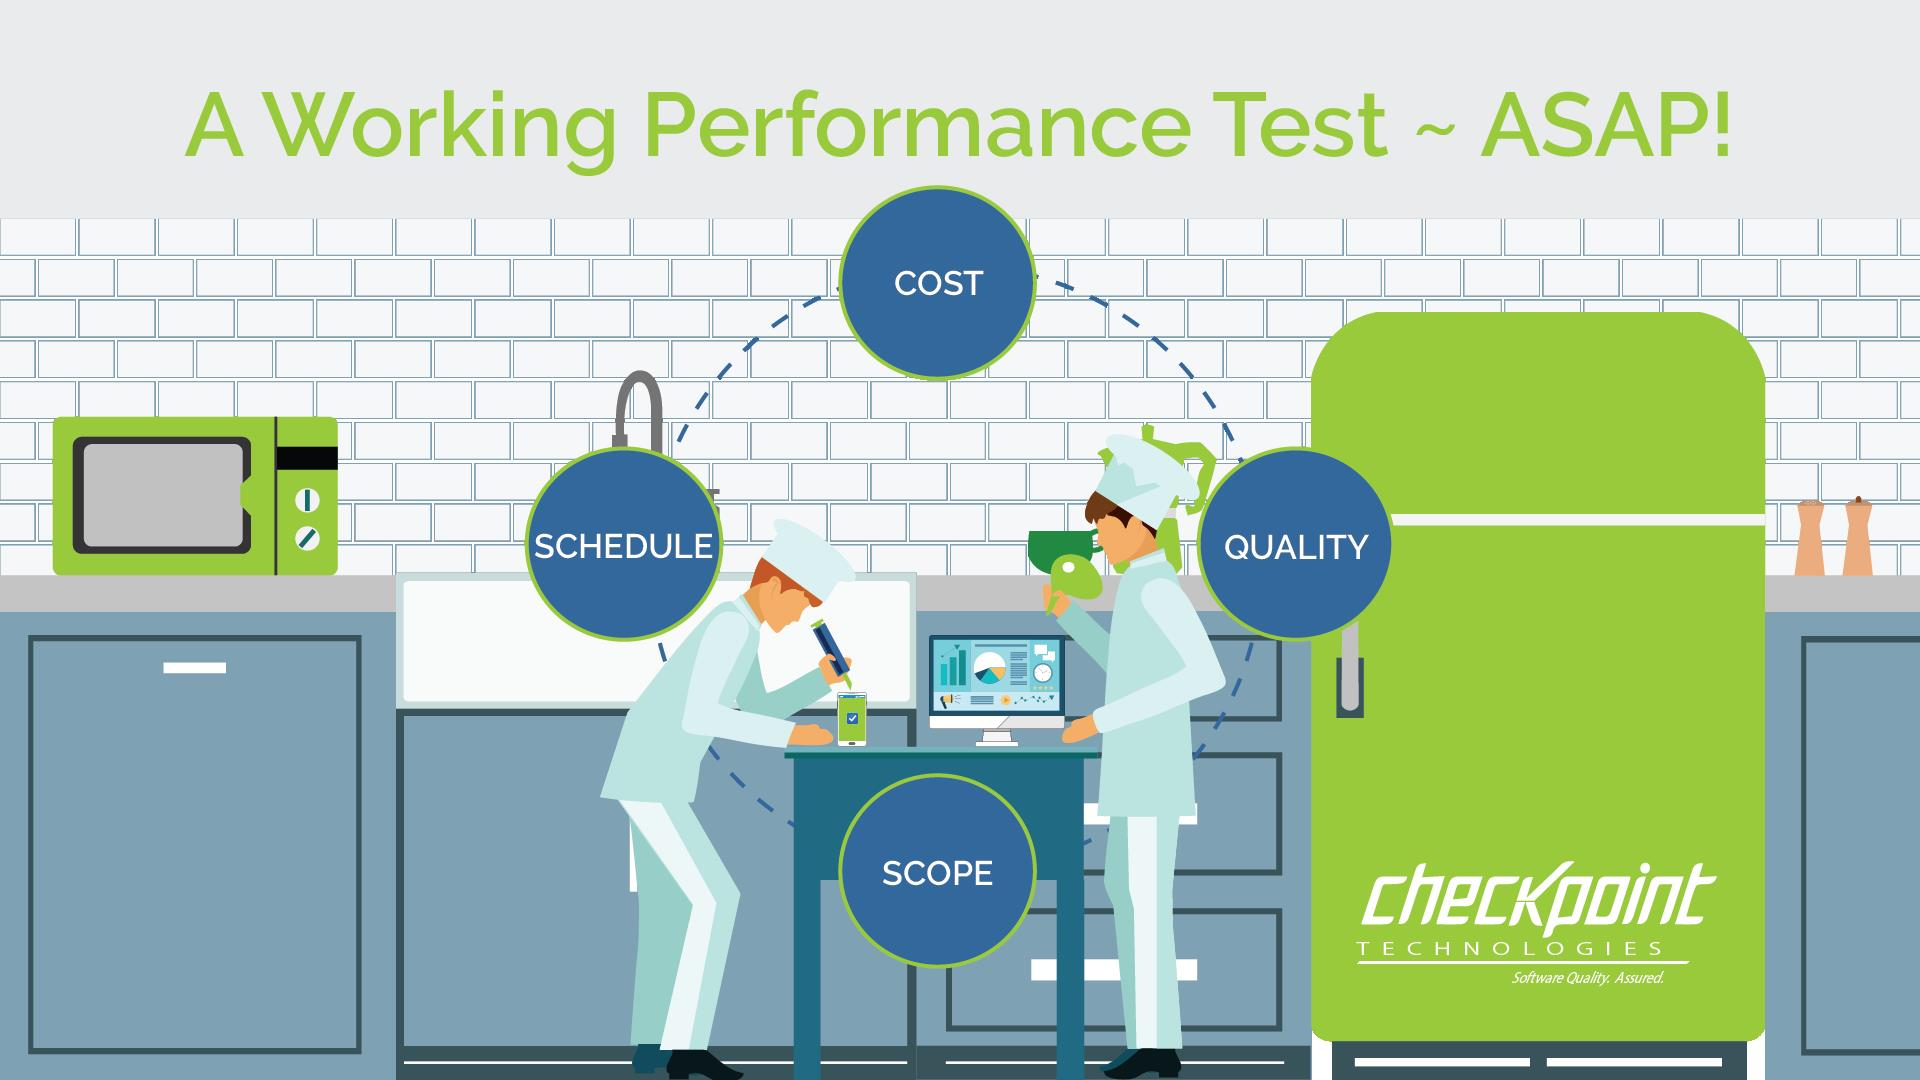 A Working Performance Test